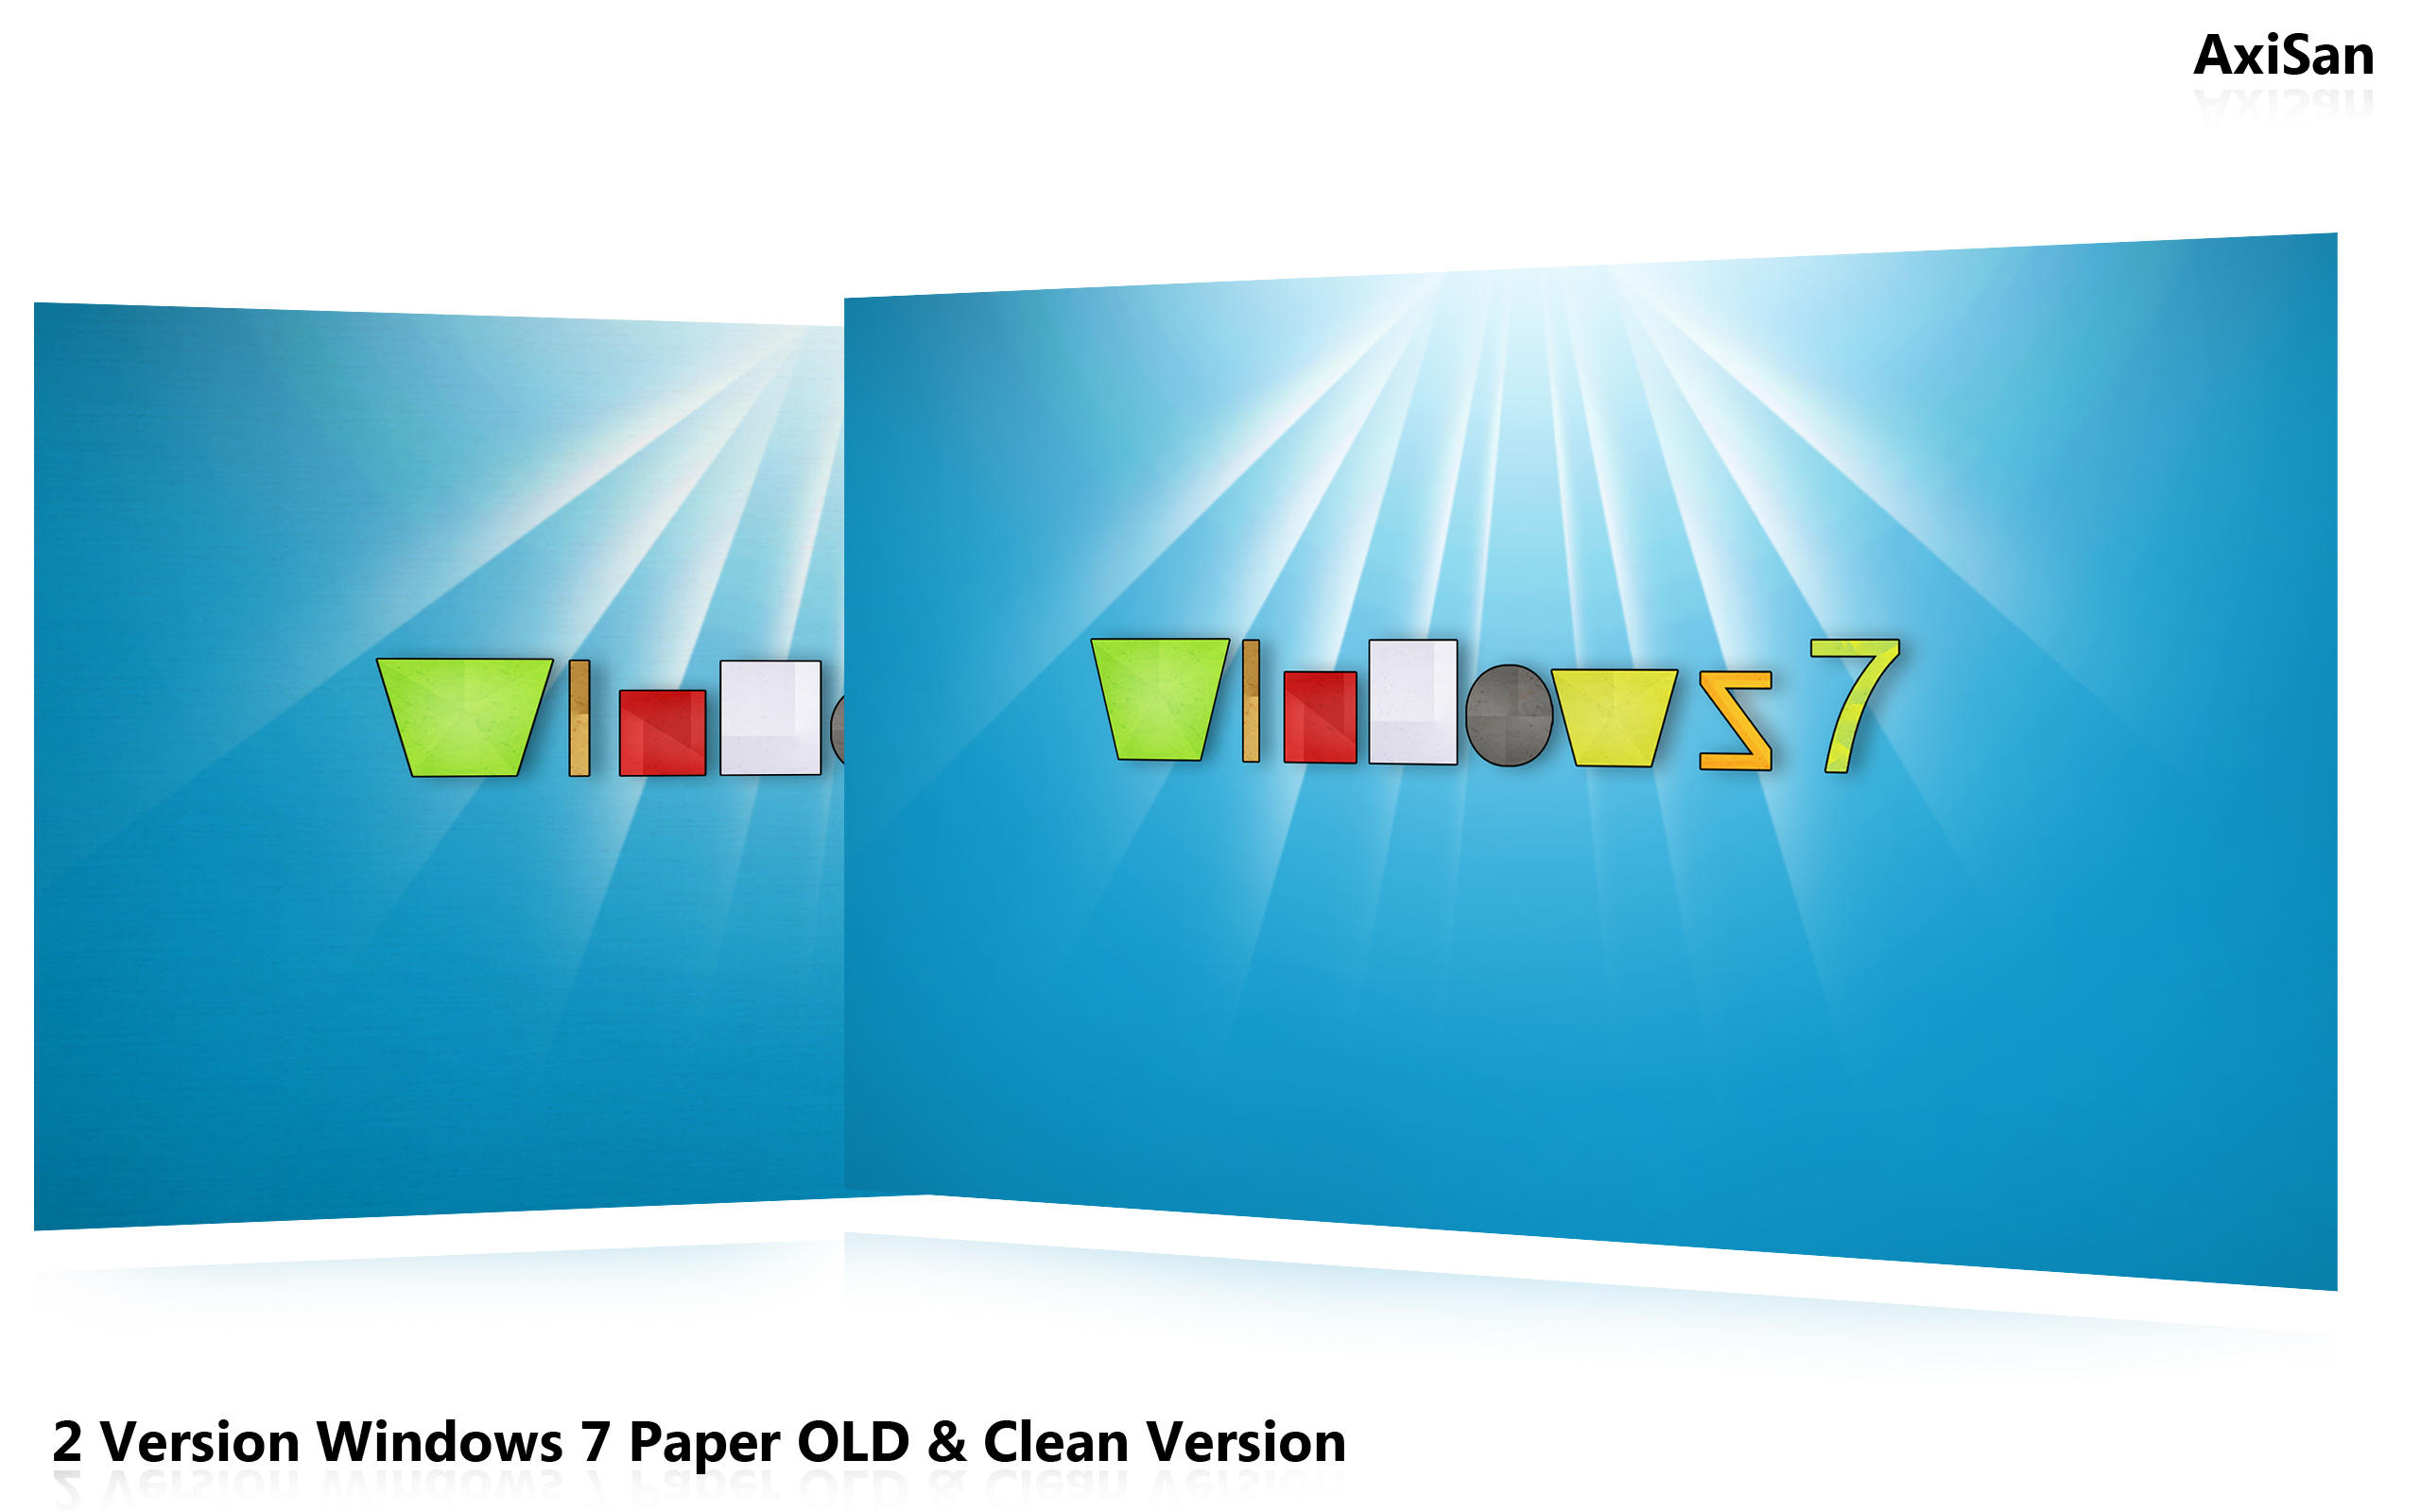 Windows 7 Paper by AxiSan